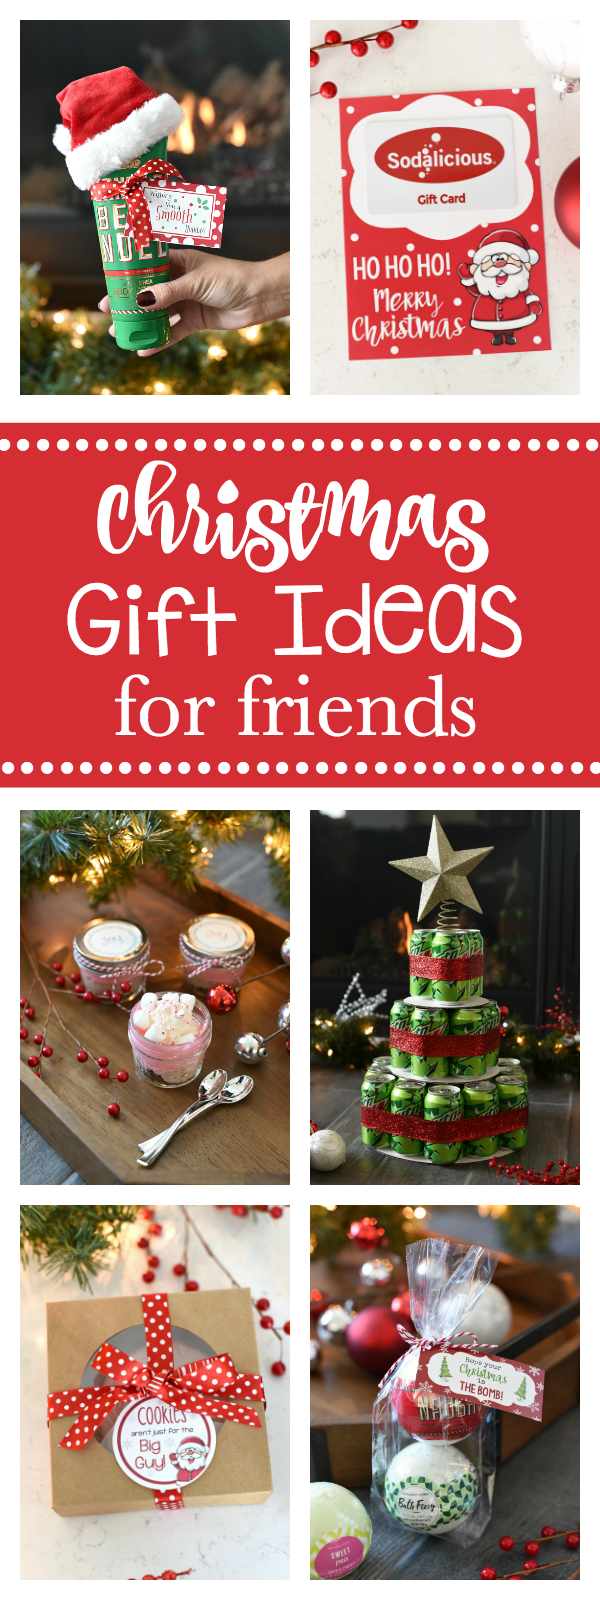 great gift ideas for your best girlfriends or bffs this christmas things your friends will